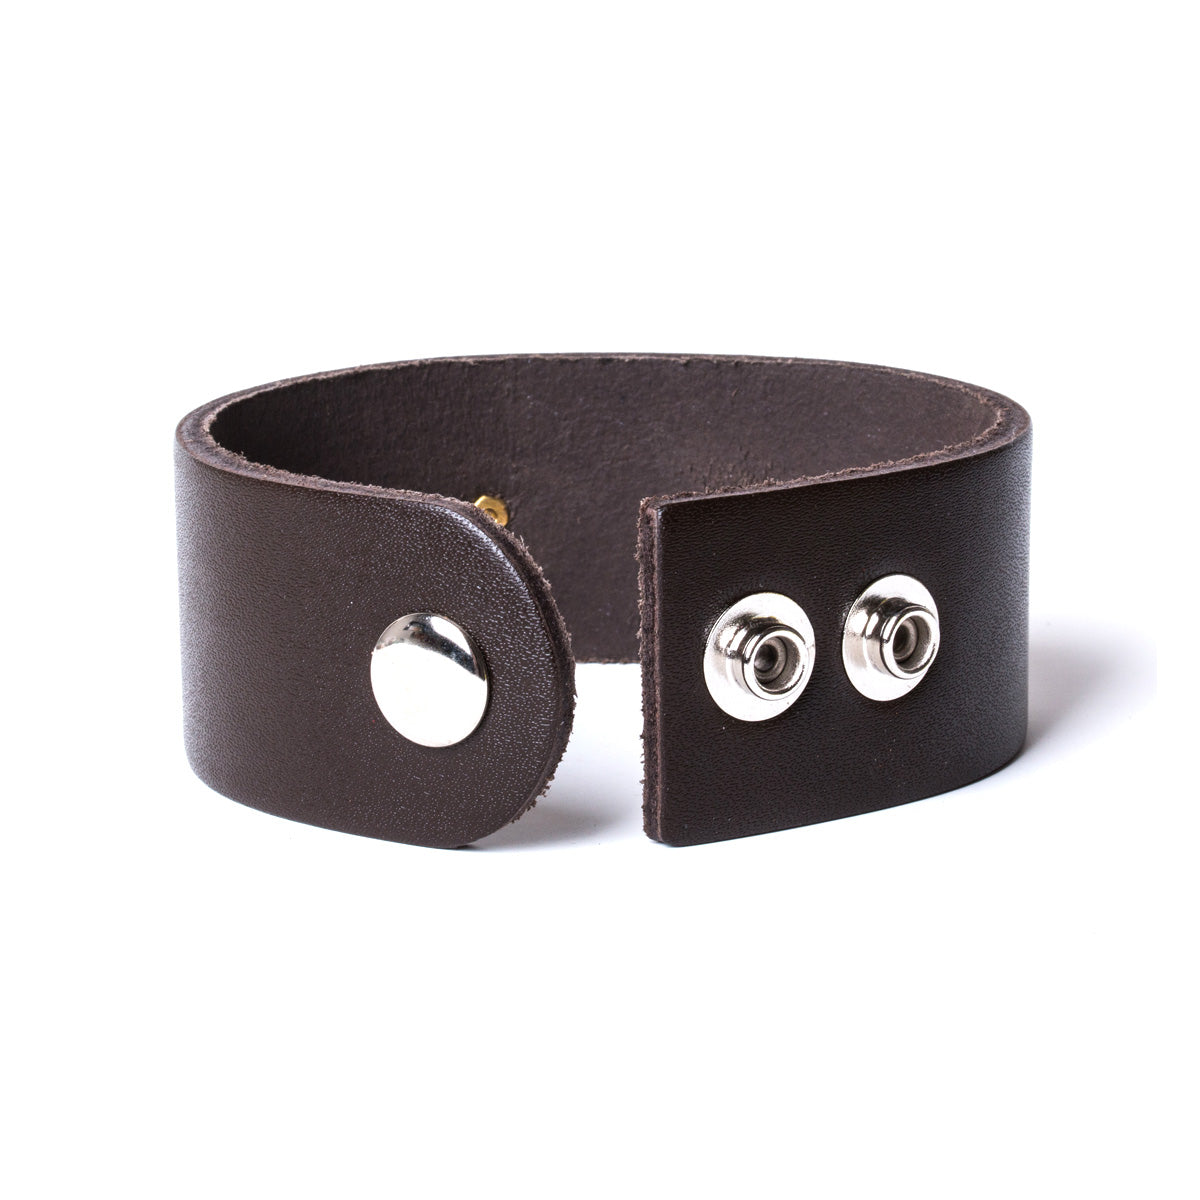 Bespoke Thick Leather Cuff for MEN